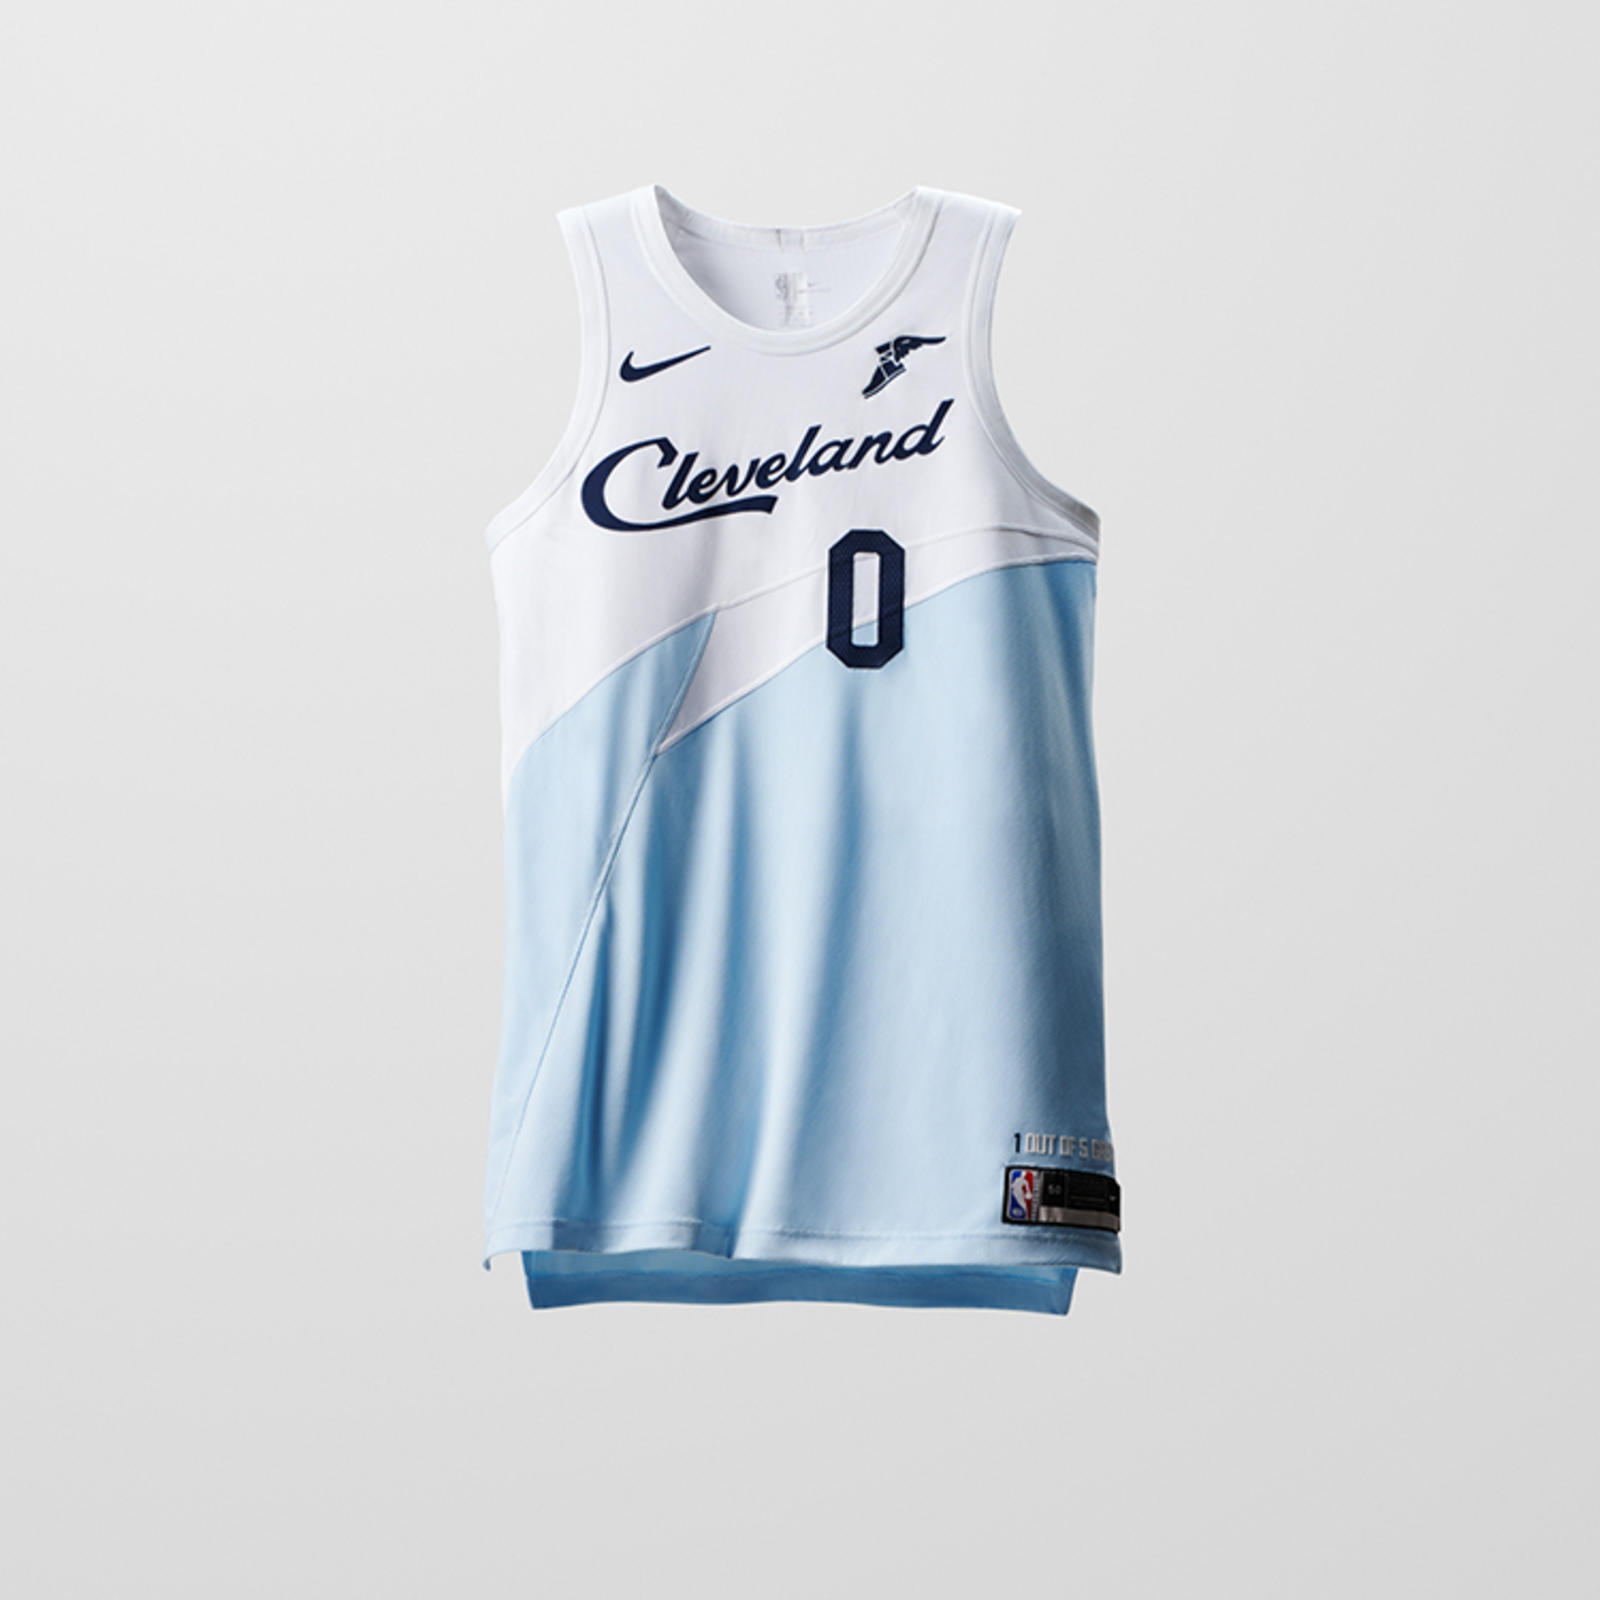 a00cdf20222 Introducing the Nike x NBA EARNED Edition Uniforms 12